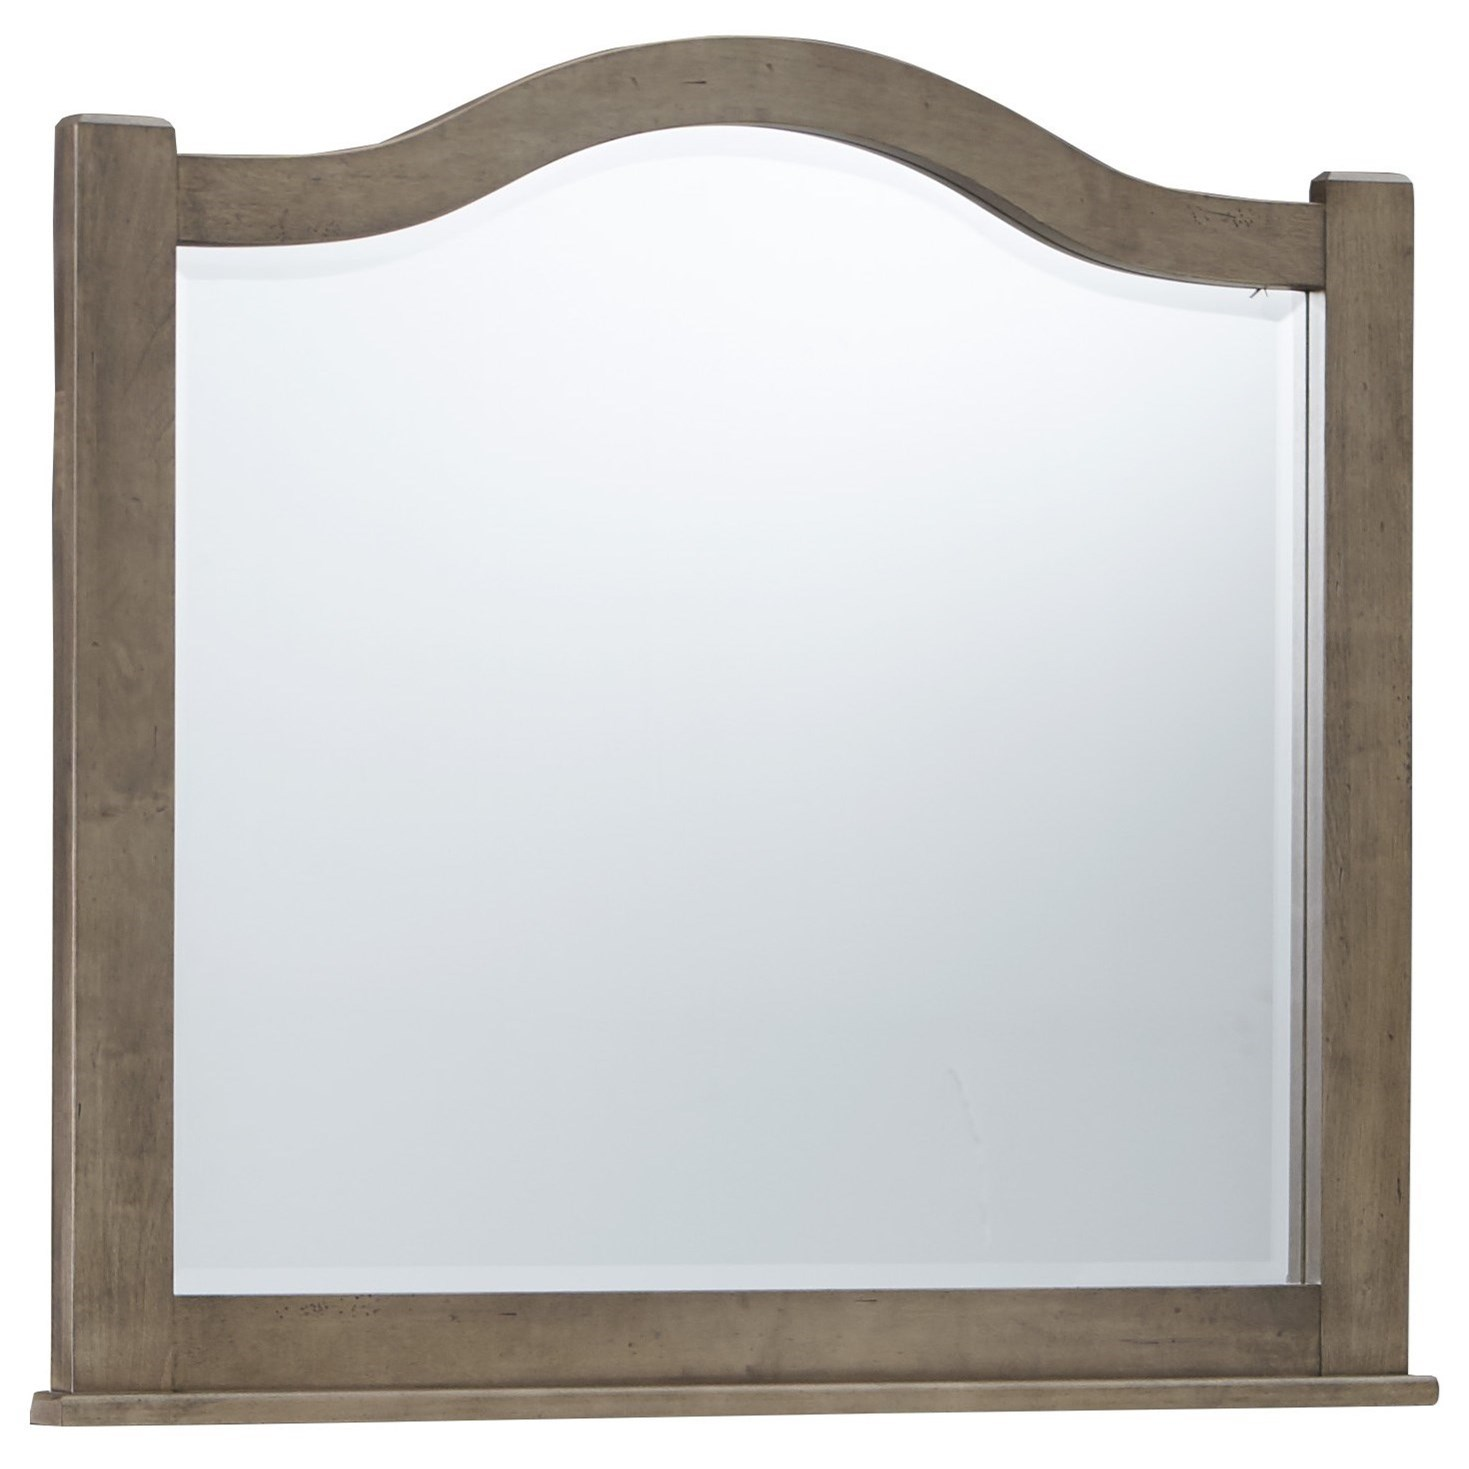 Vaughan Bassett American Maple Arched Mirror - Beveled Glass - Item Number: 401-447